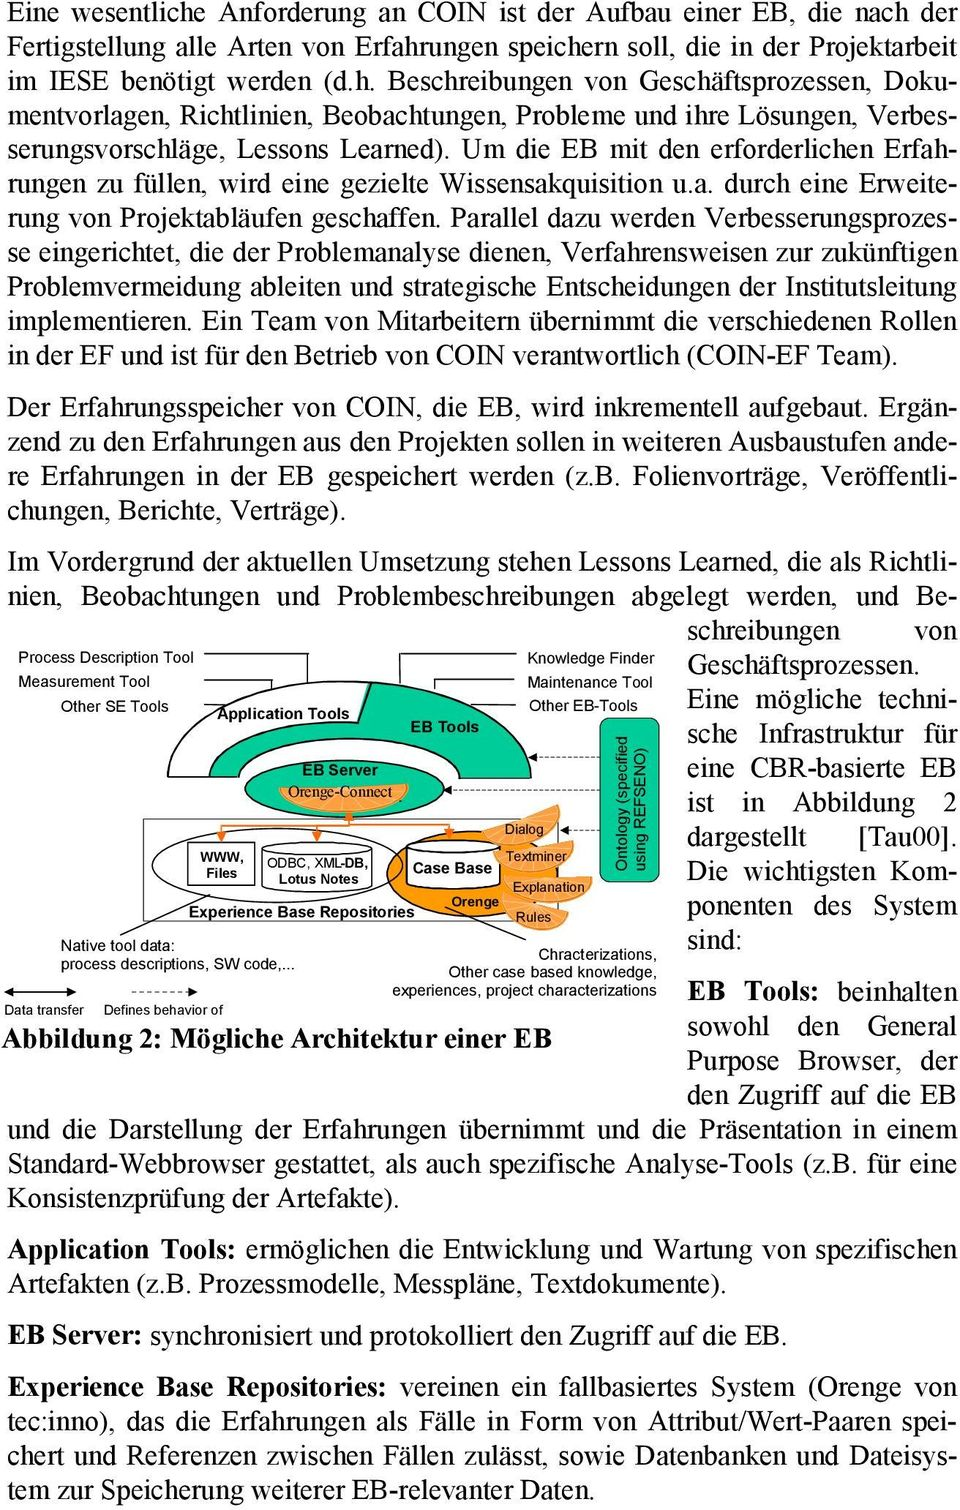 Textminer Explanation Rules Chracterizations, Other case based knowledge, experiences, project characterizations Abbildung 2: Mögliche Architektur einer EB Eine wesentliche Anforderung an COIN ist